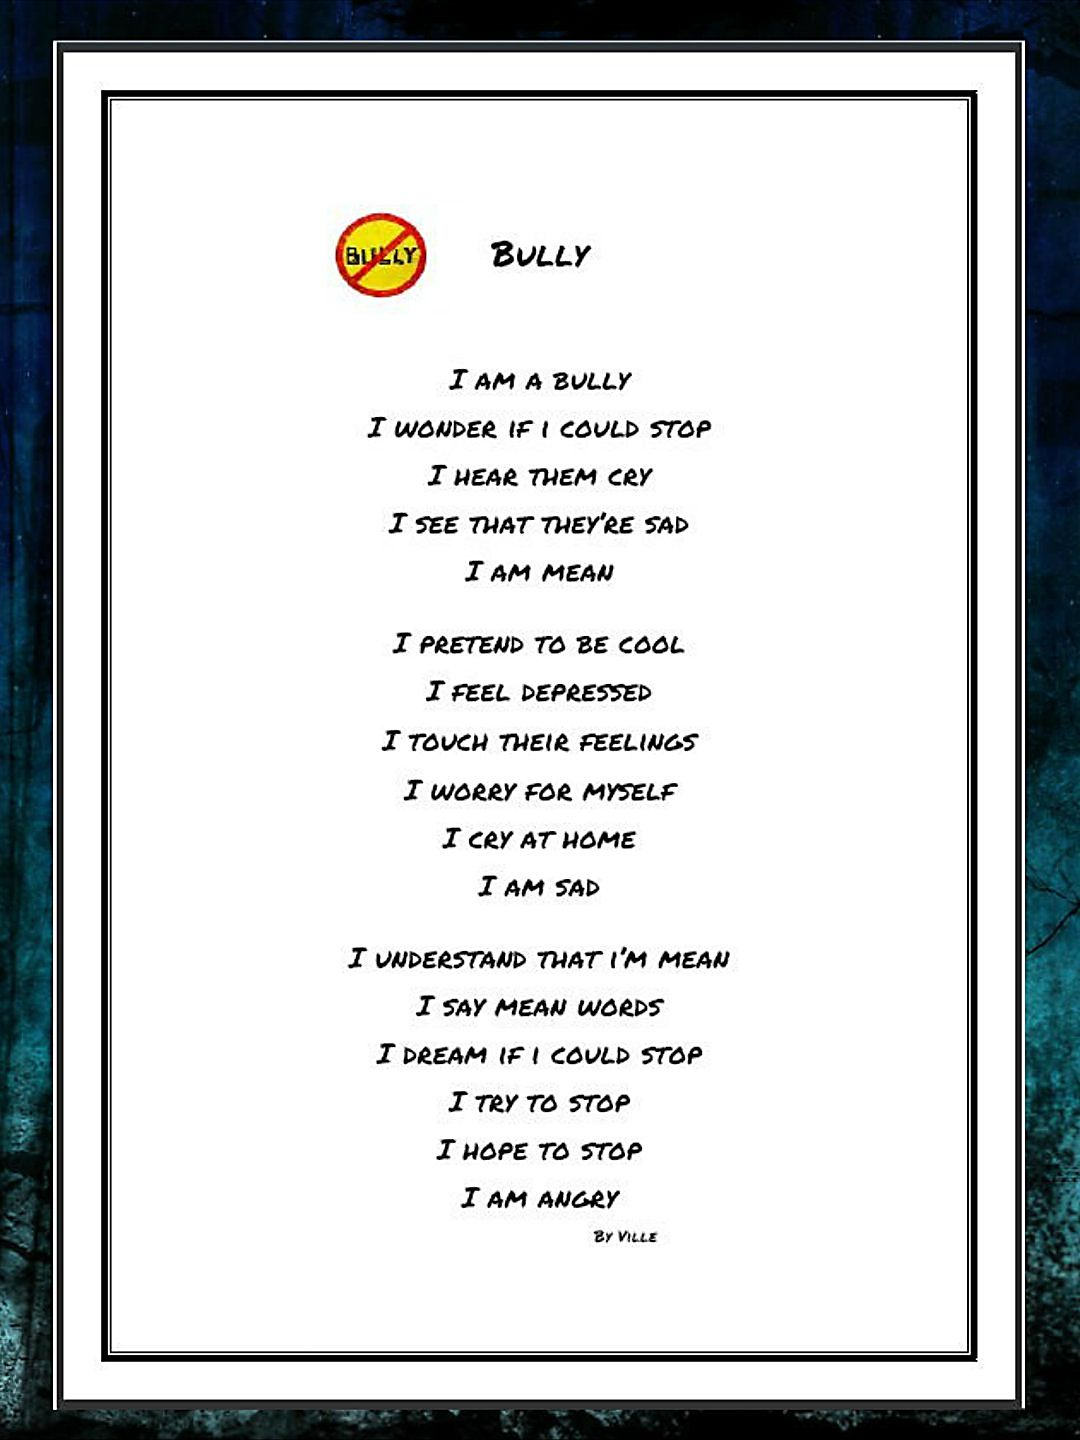 Bullying Poems | Examples of Bullying Poetry